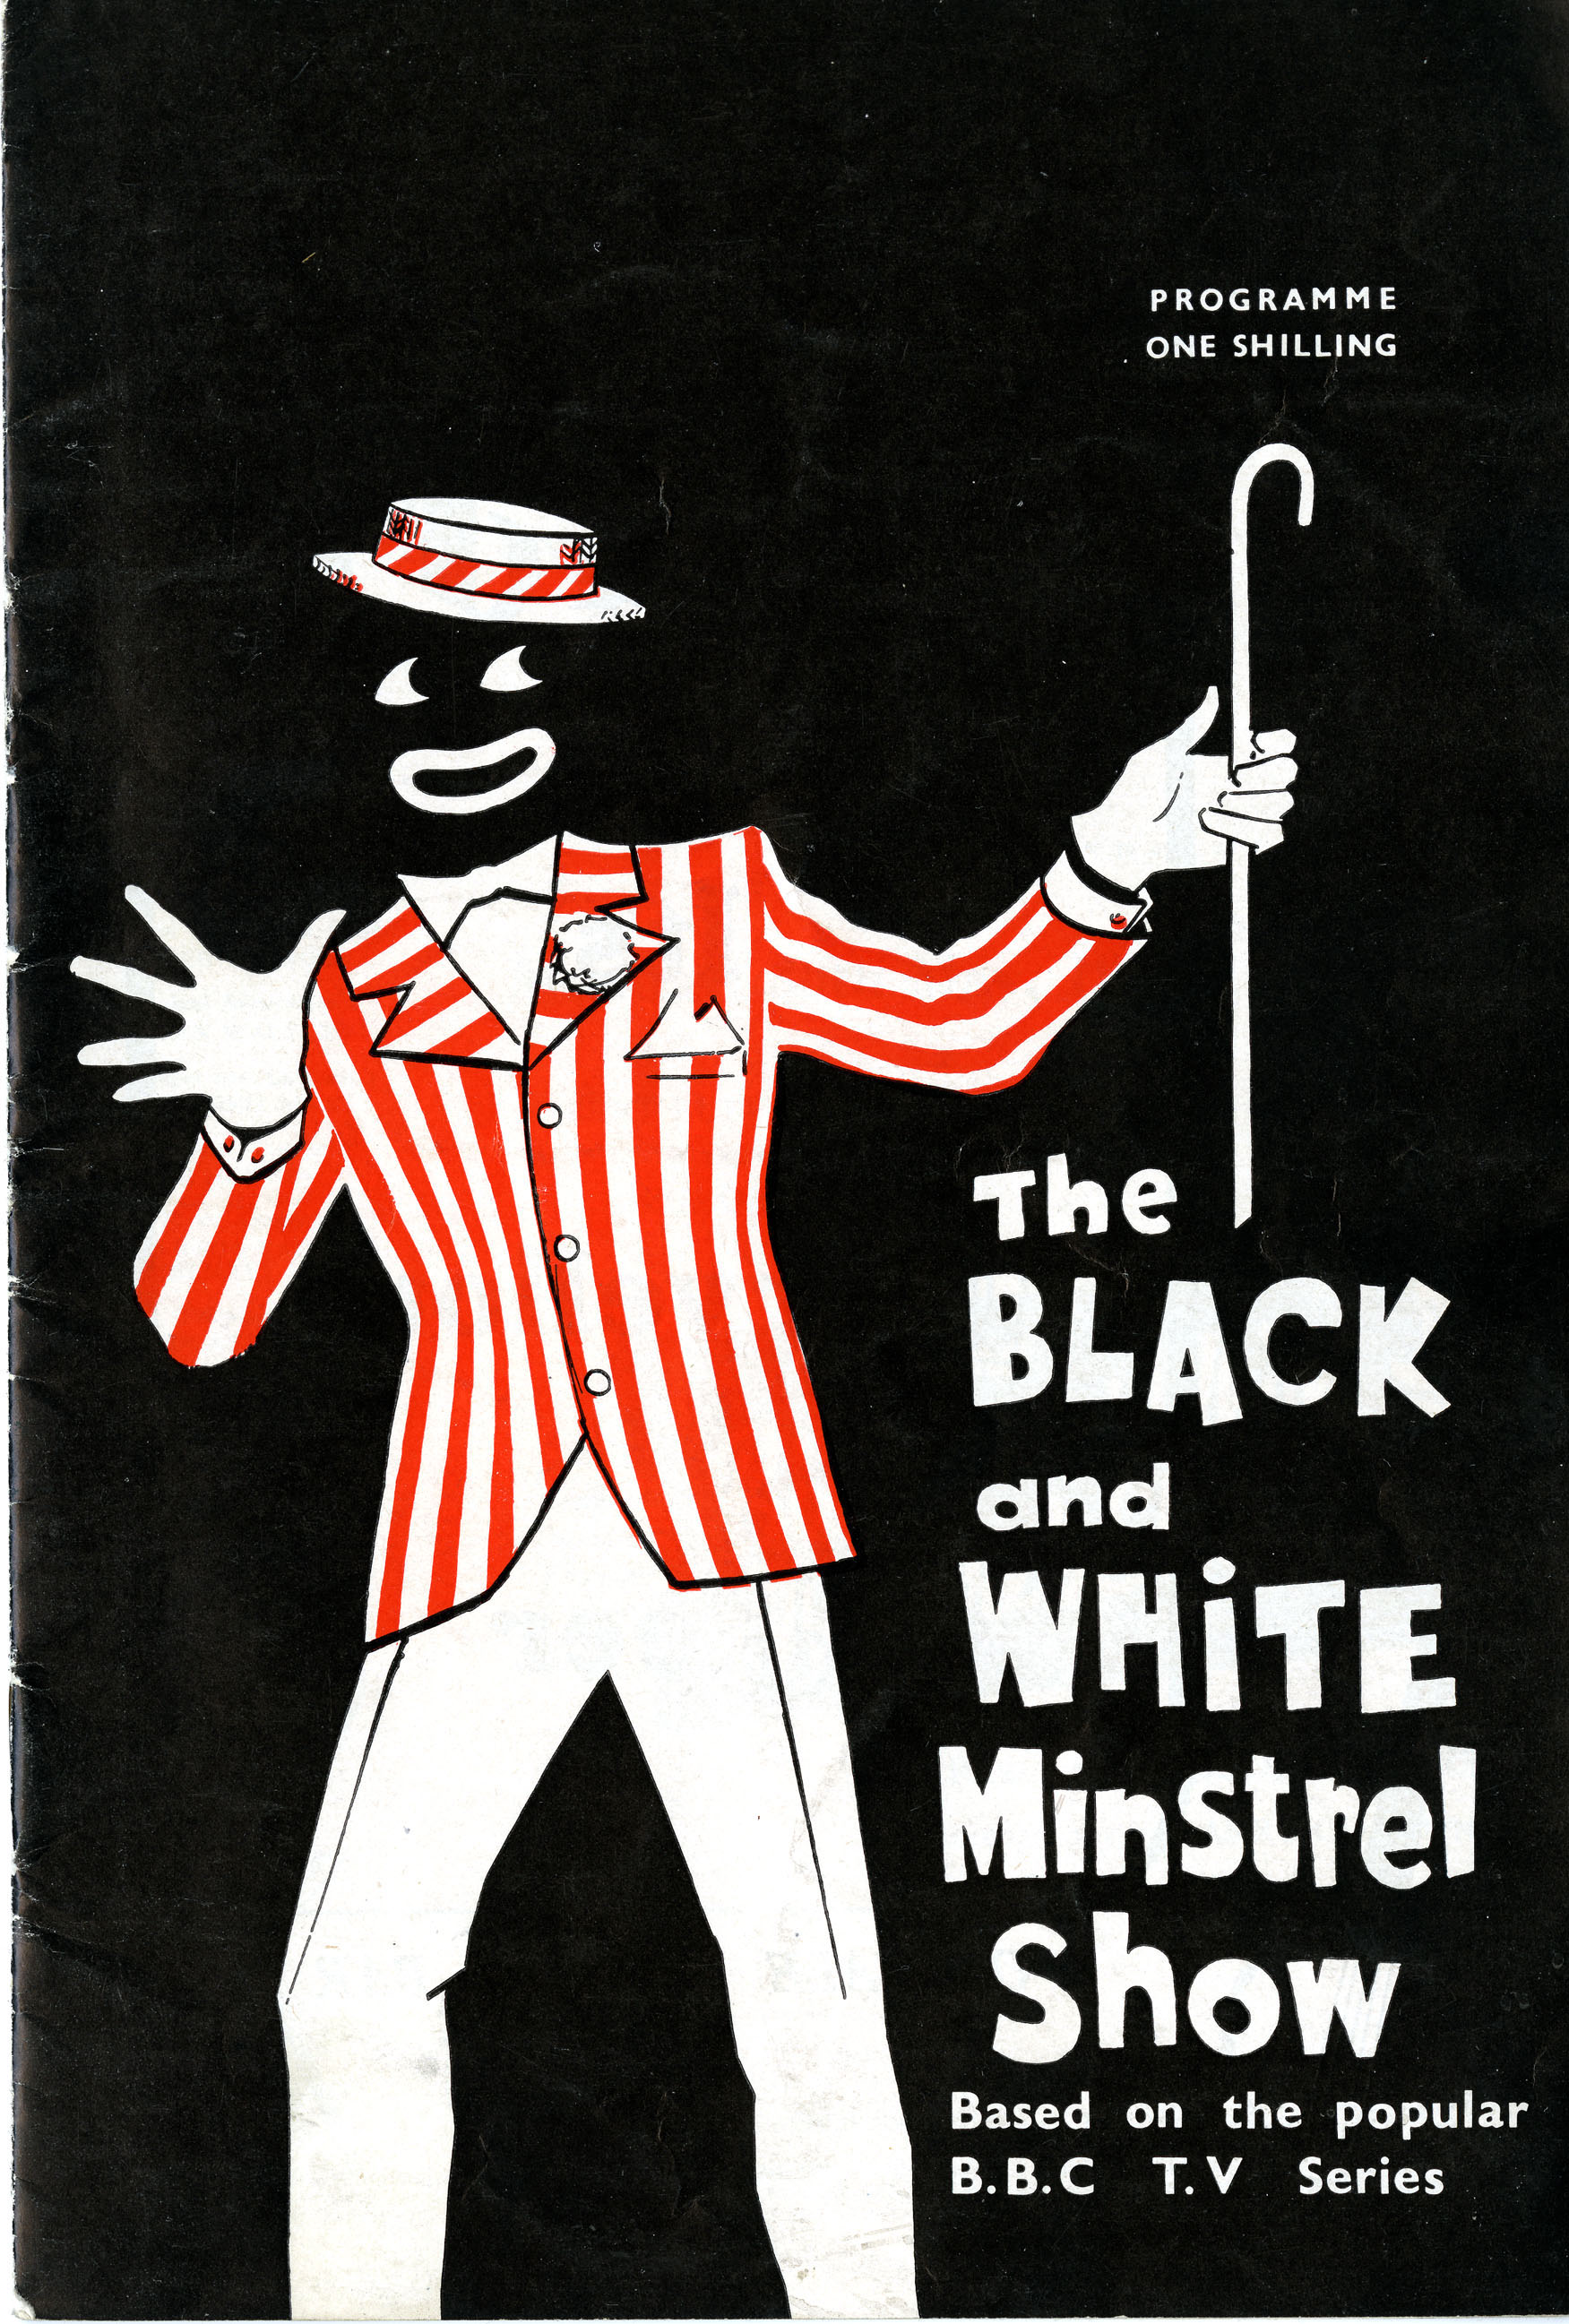 Programme the black and white minstrel show birmingham hippodrome